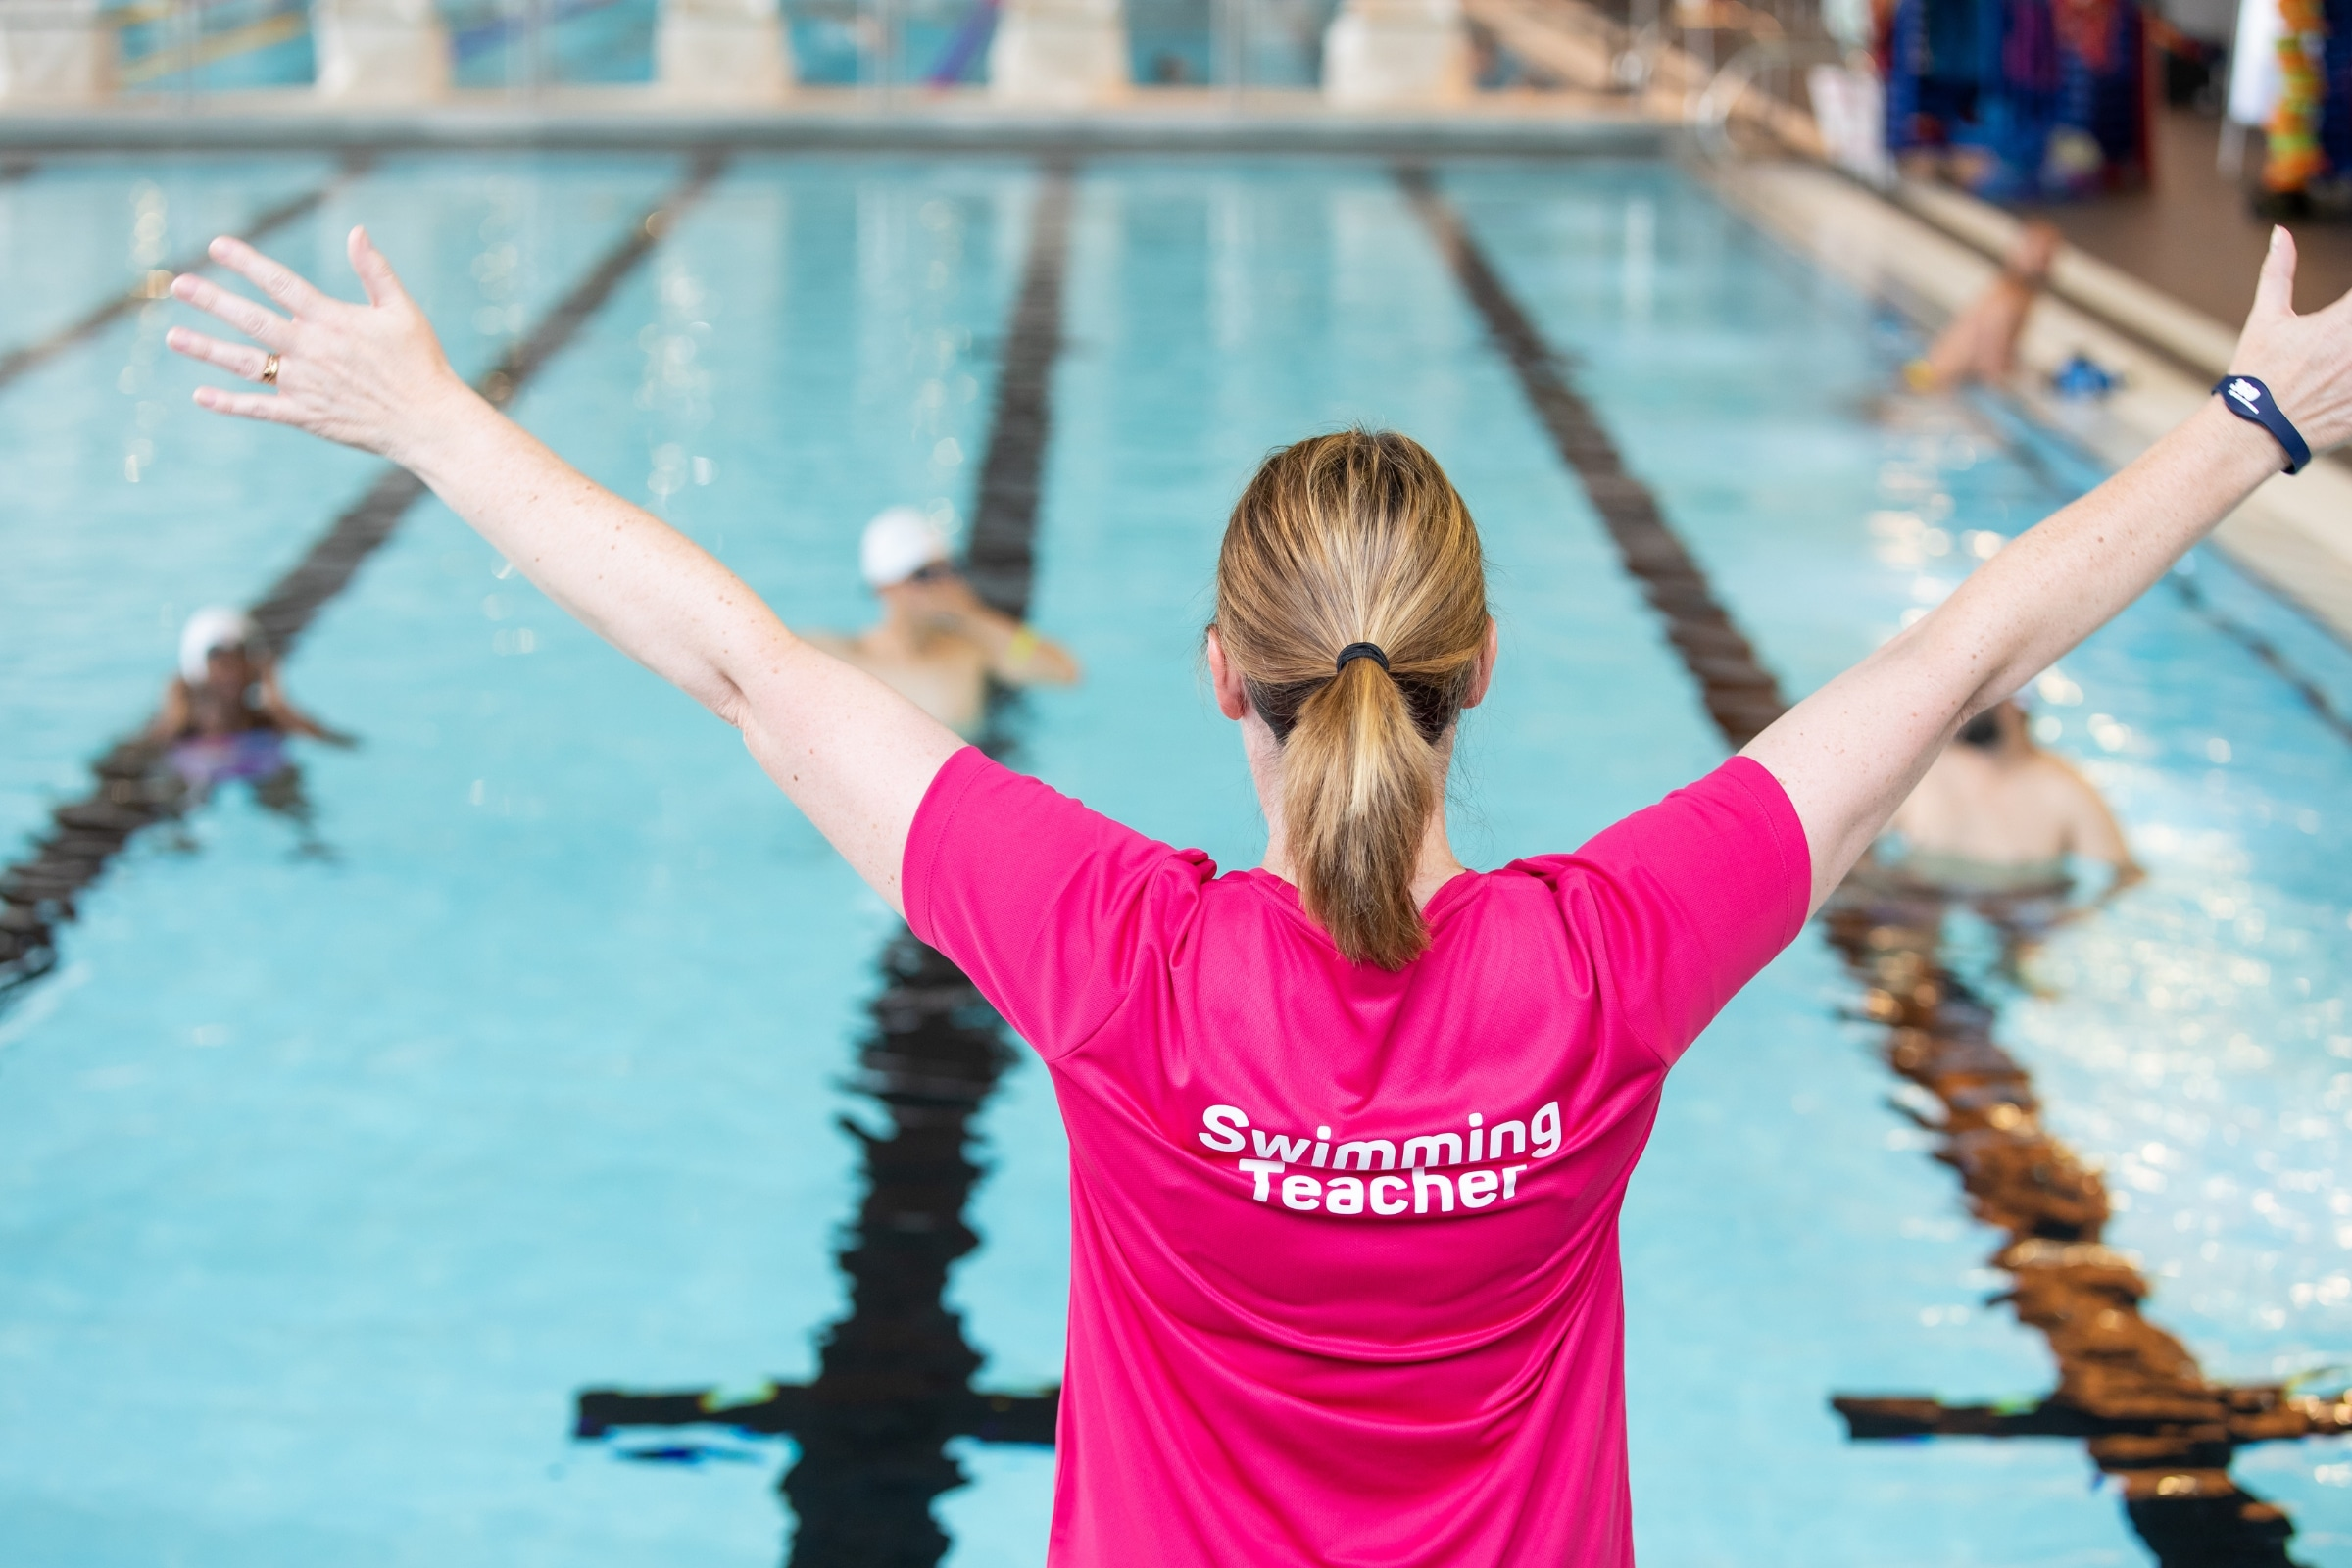 Bedfordshire Swimming Teacher Recruitment Academy